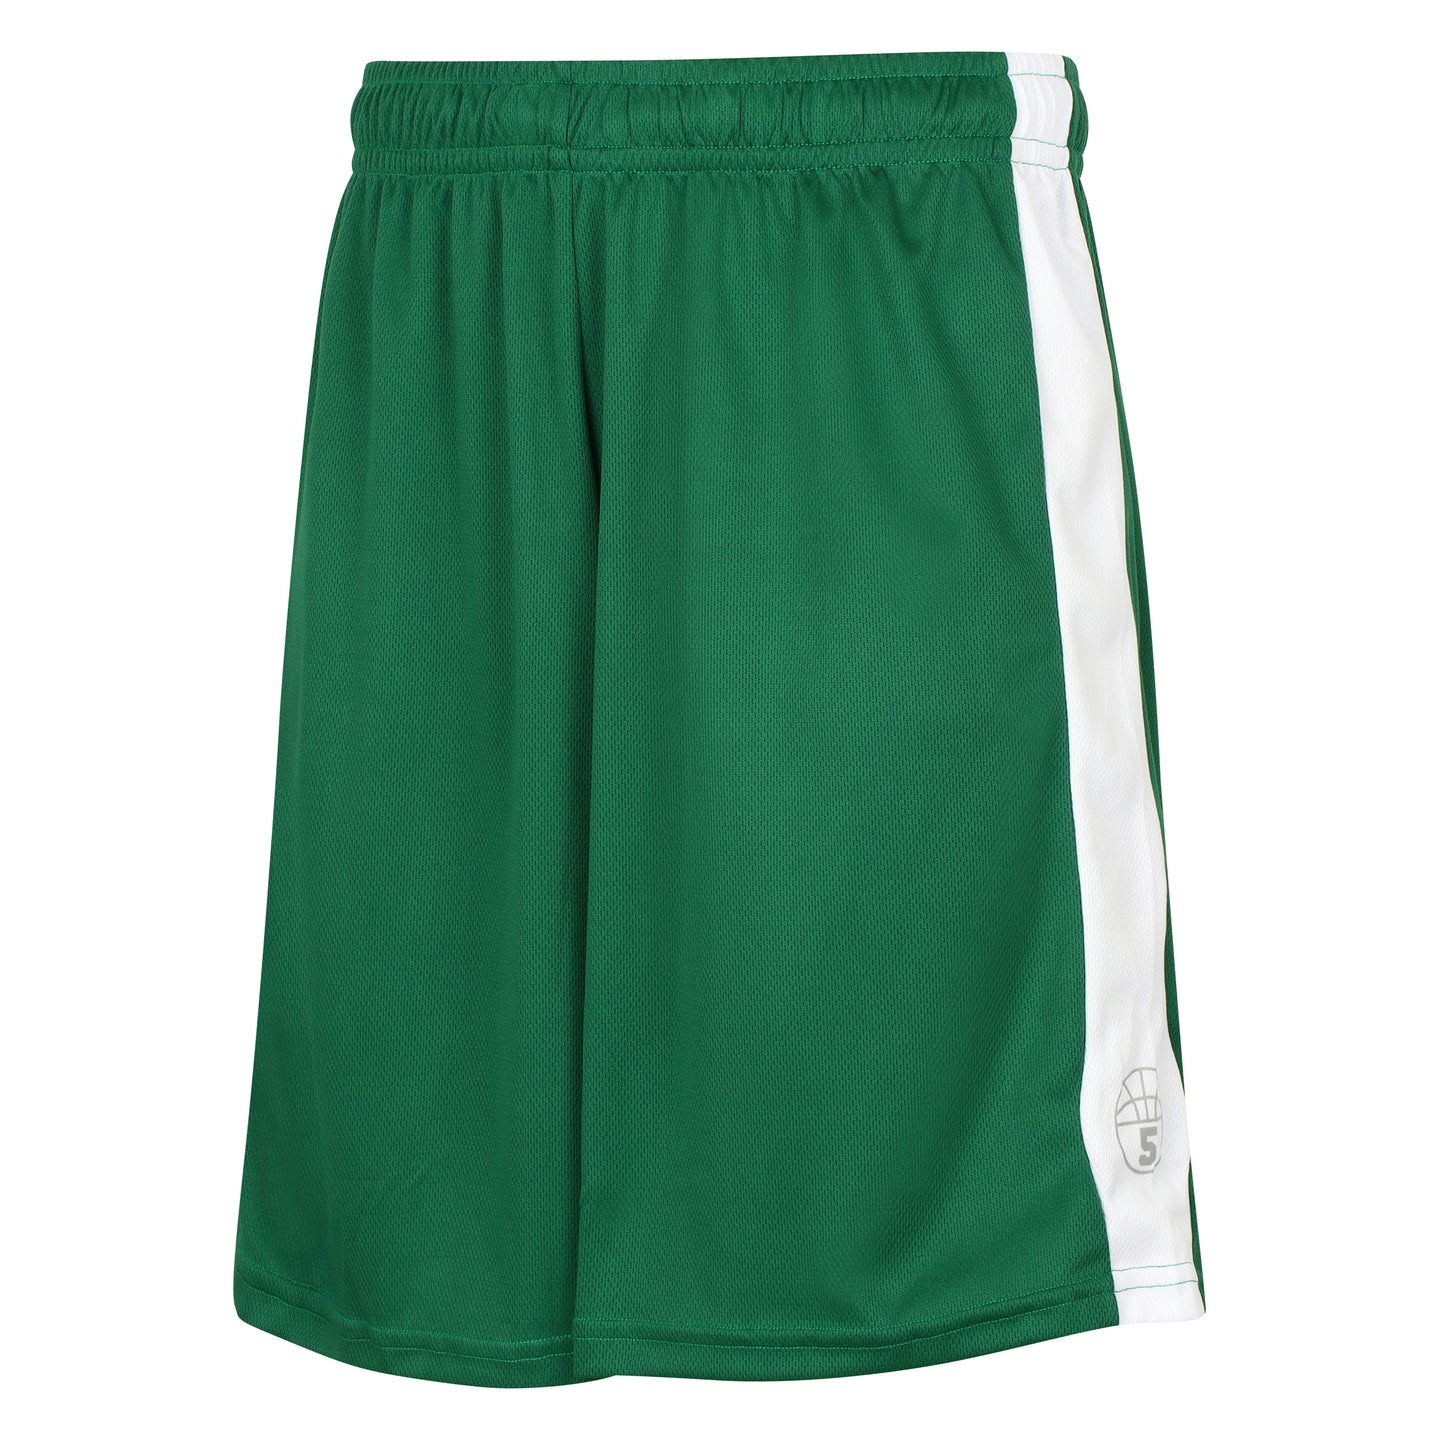 Starting 5 Pelham Basketball Shorts Green/White